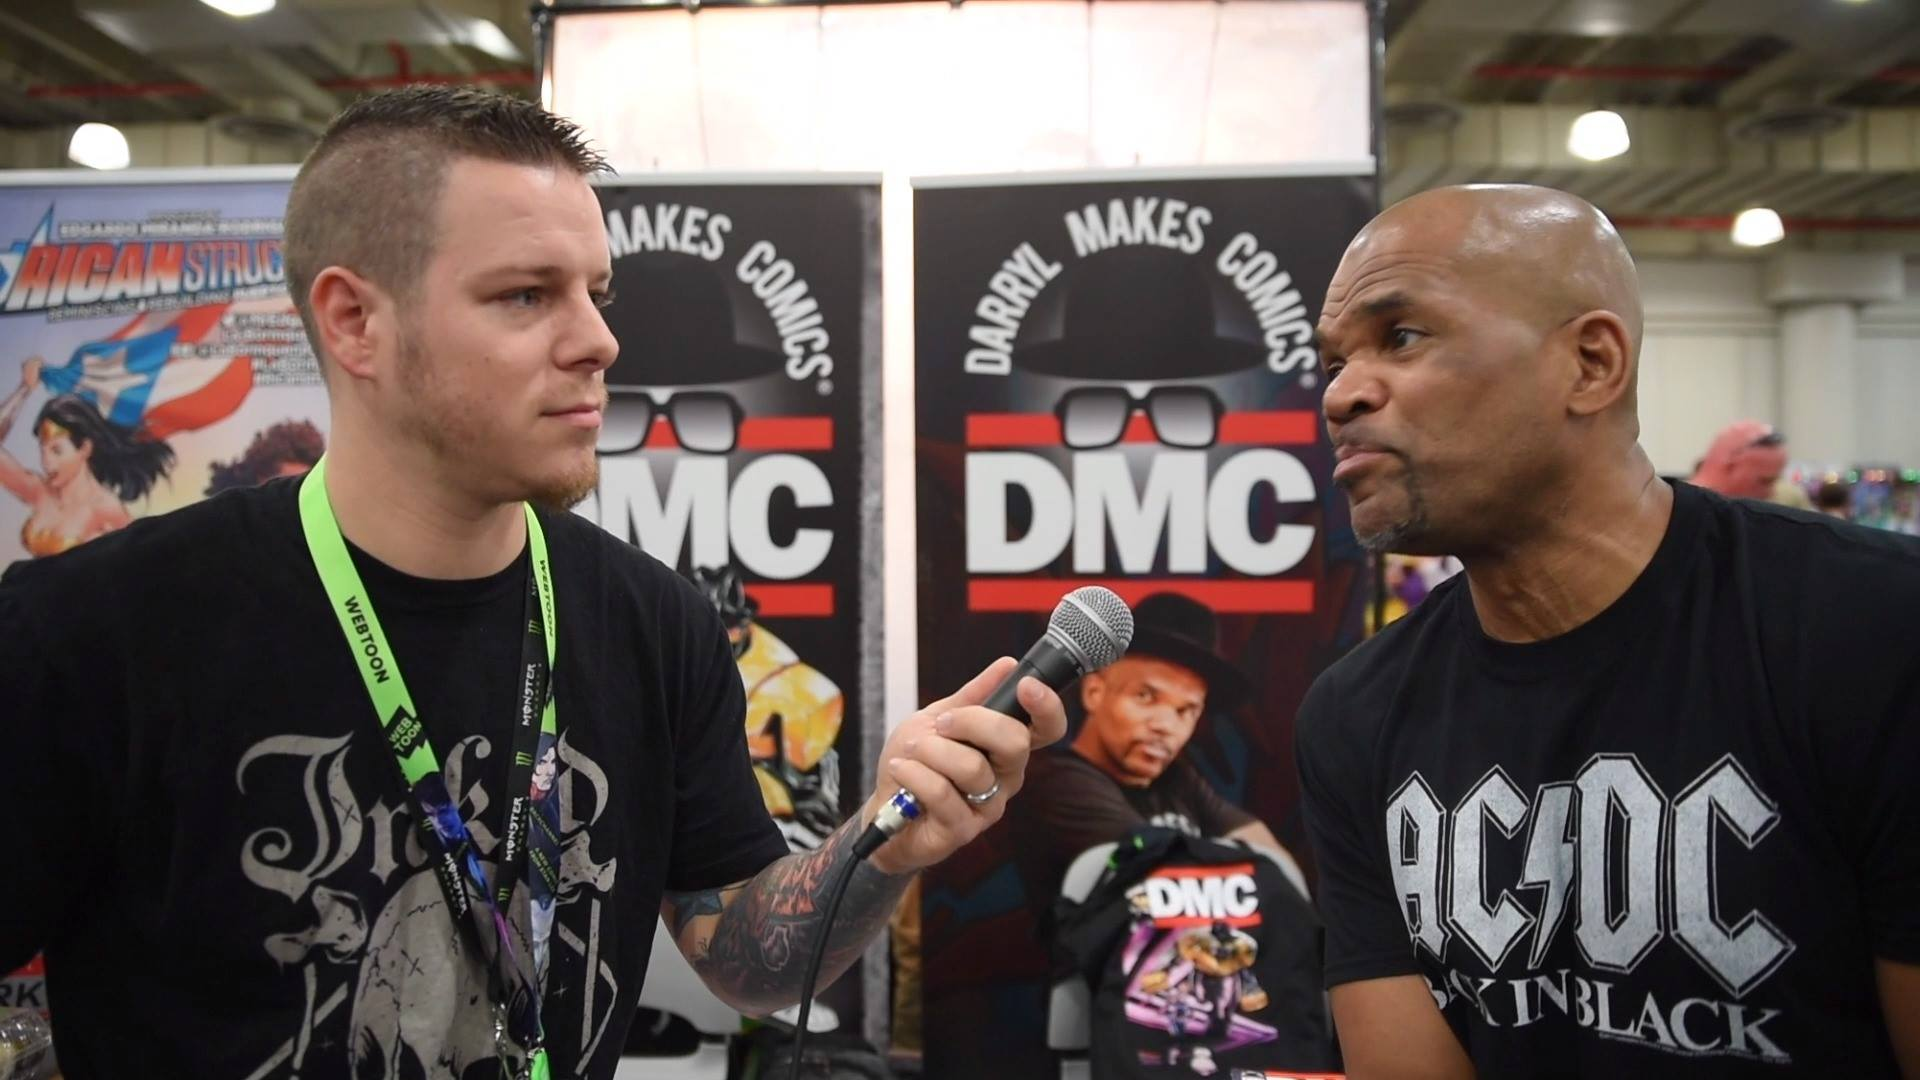 Darryl DMC McDaniels - Interview at NYCC 2018